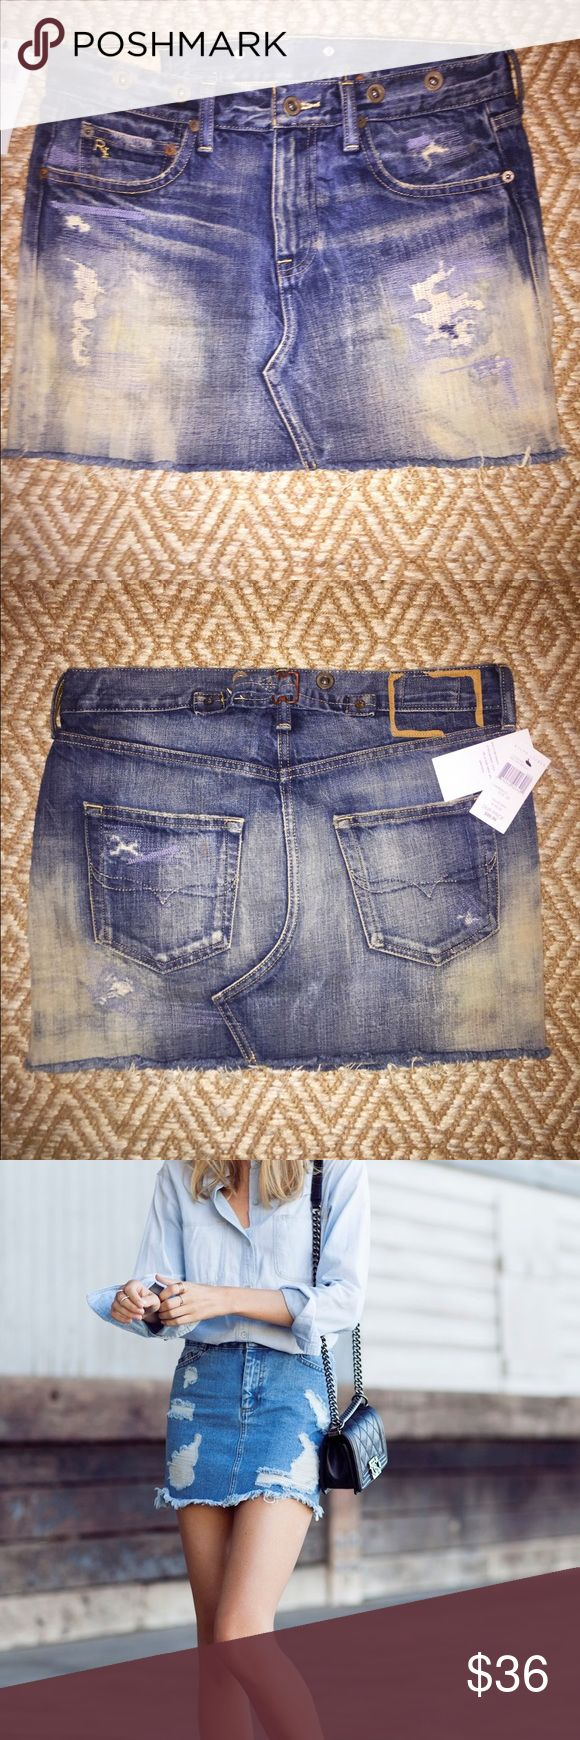 **Price Drop** Ralph Lauren Distressed Denim Mini The denim mini is making a come back! This is an awesome piece, distressed and weathered denim. Carpenter style hardware. Polo by Ralph Lauren Skirts Mini